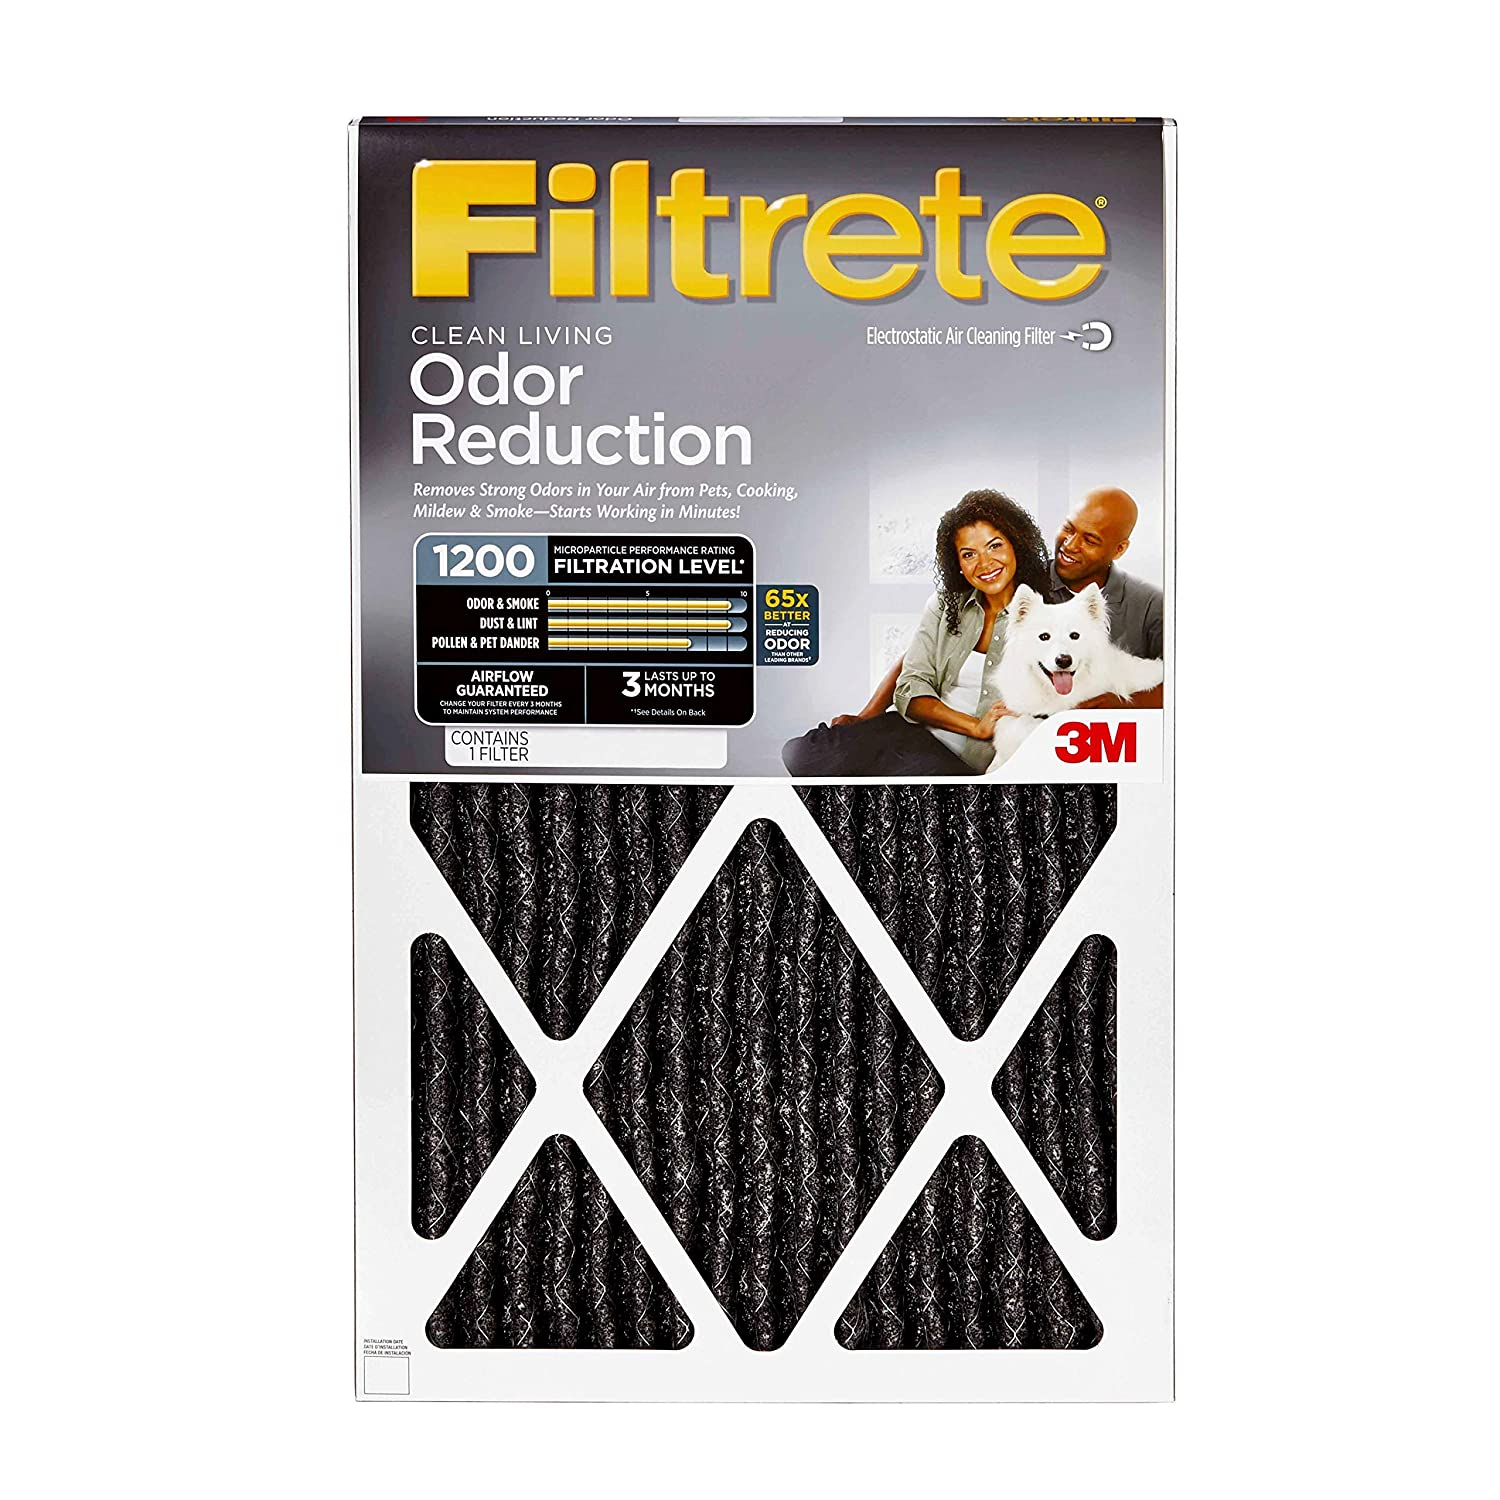 Filtrete 16x25x1, AC Furnace Air Filter, MPR 1200, Allergen Defense Odor Reduction, 4-Pack